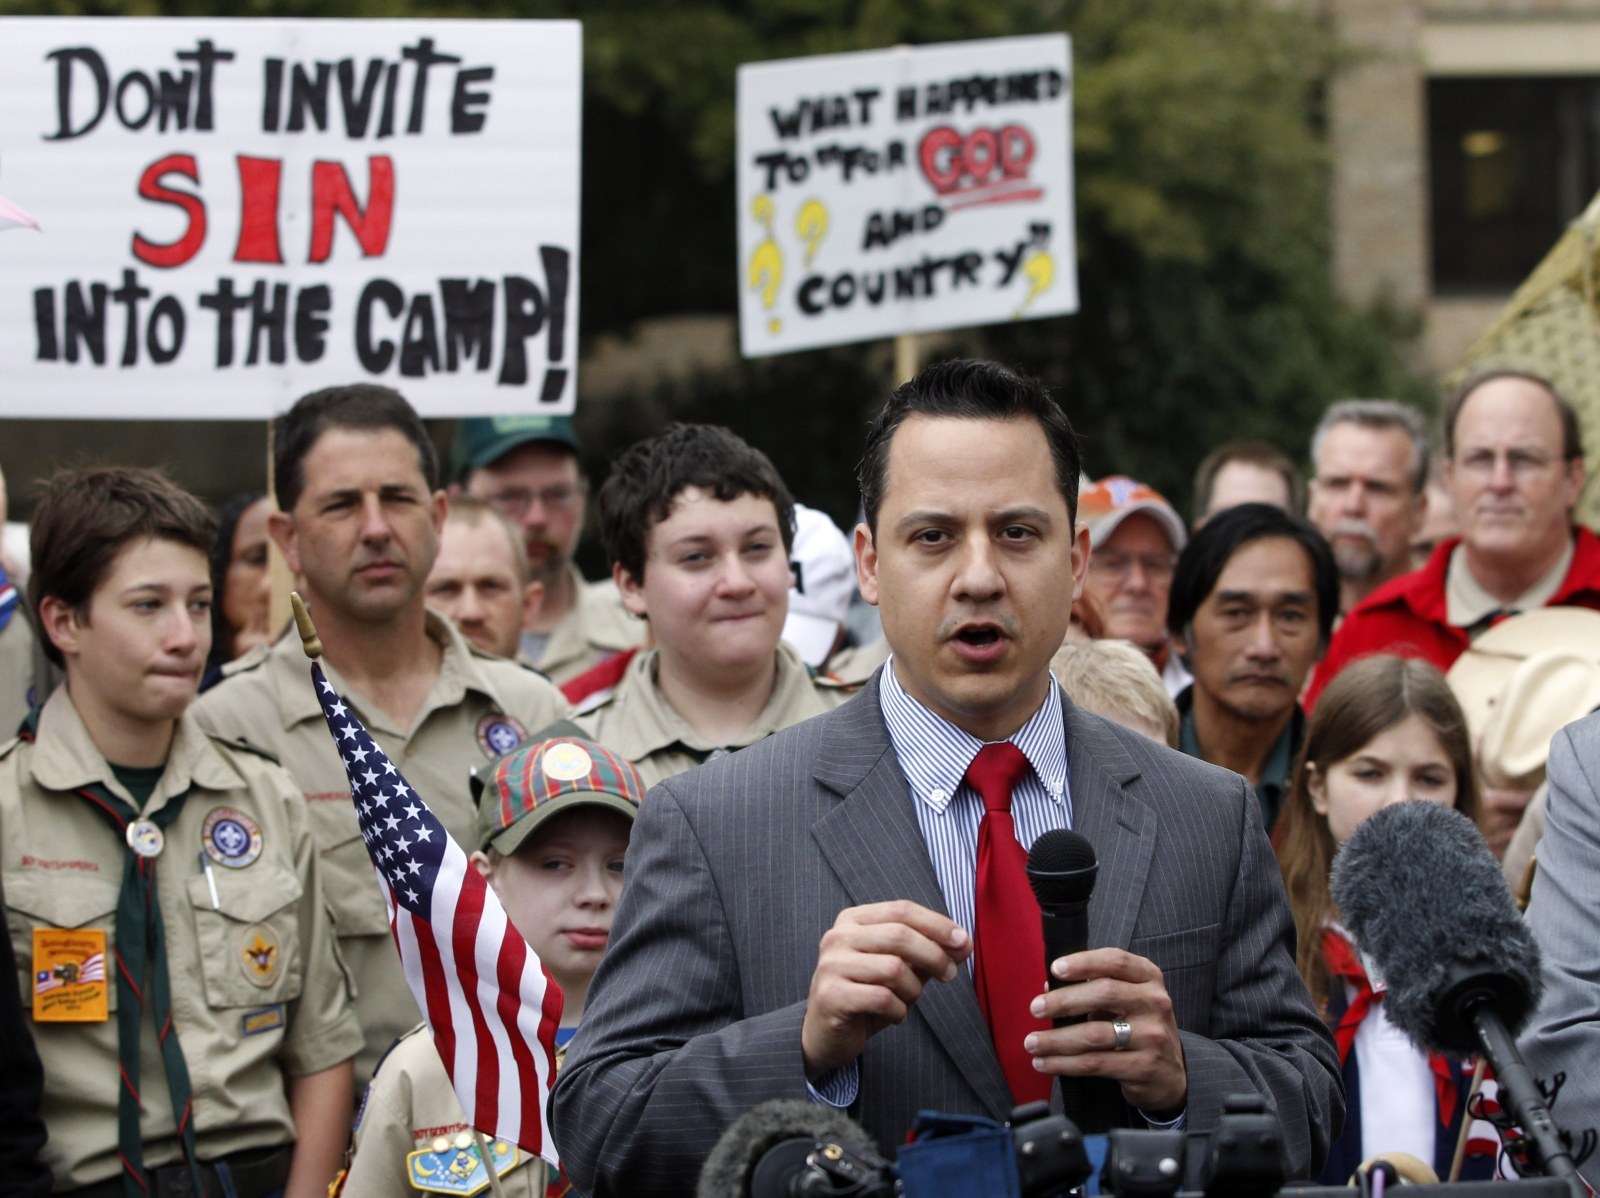 Anti-gay group leader Jonathan Saenz's wife has left him for another woman